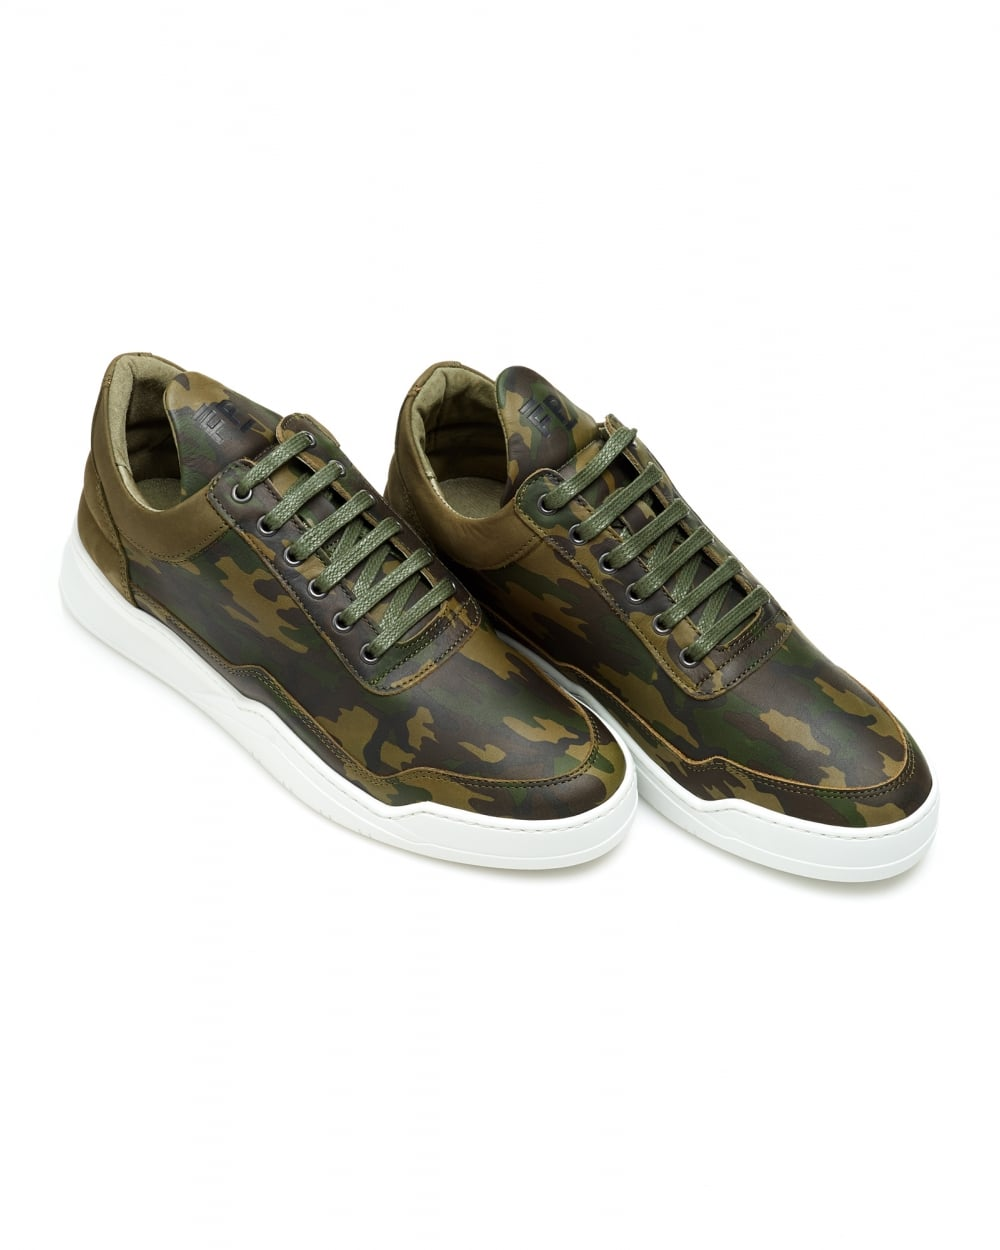 7b807bb3c75f3 Filling Pieces Mens Low Top Ghost Trainers, Camo Green Sneakers